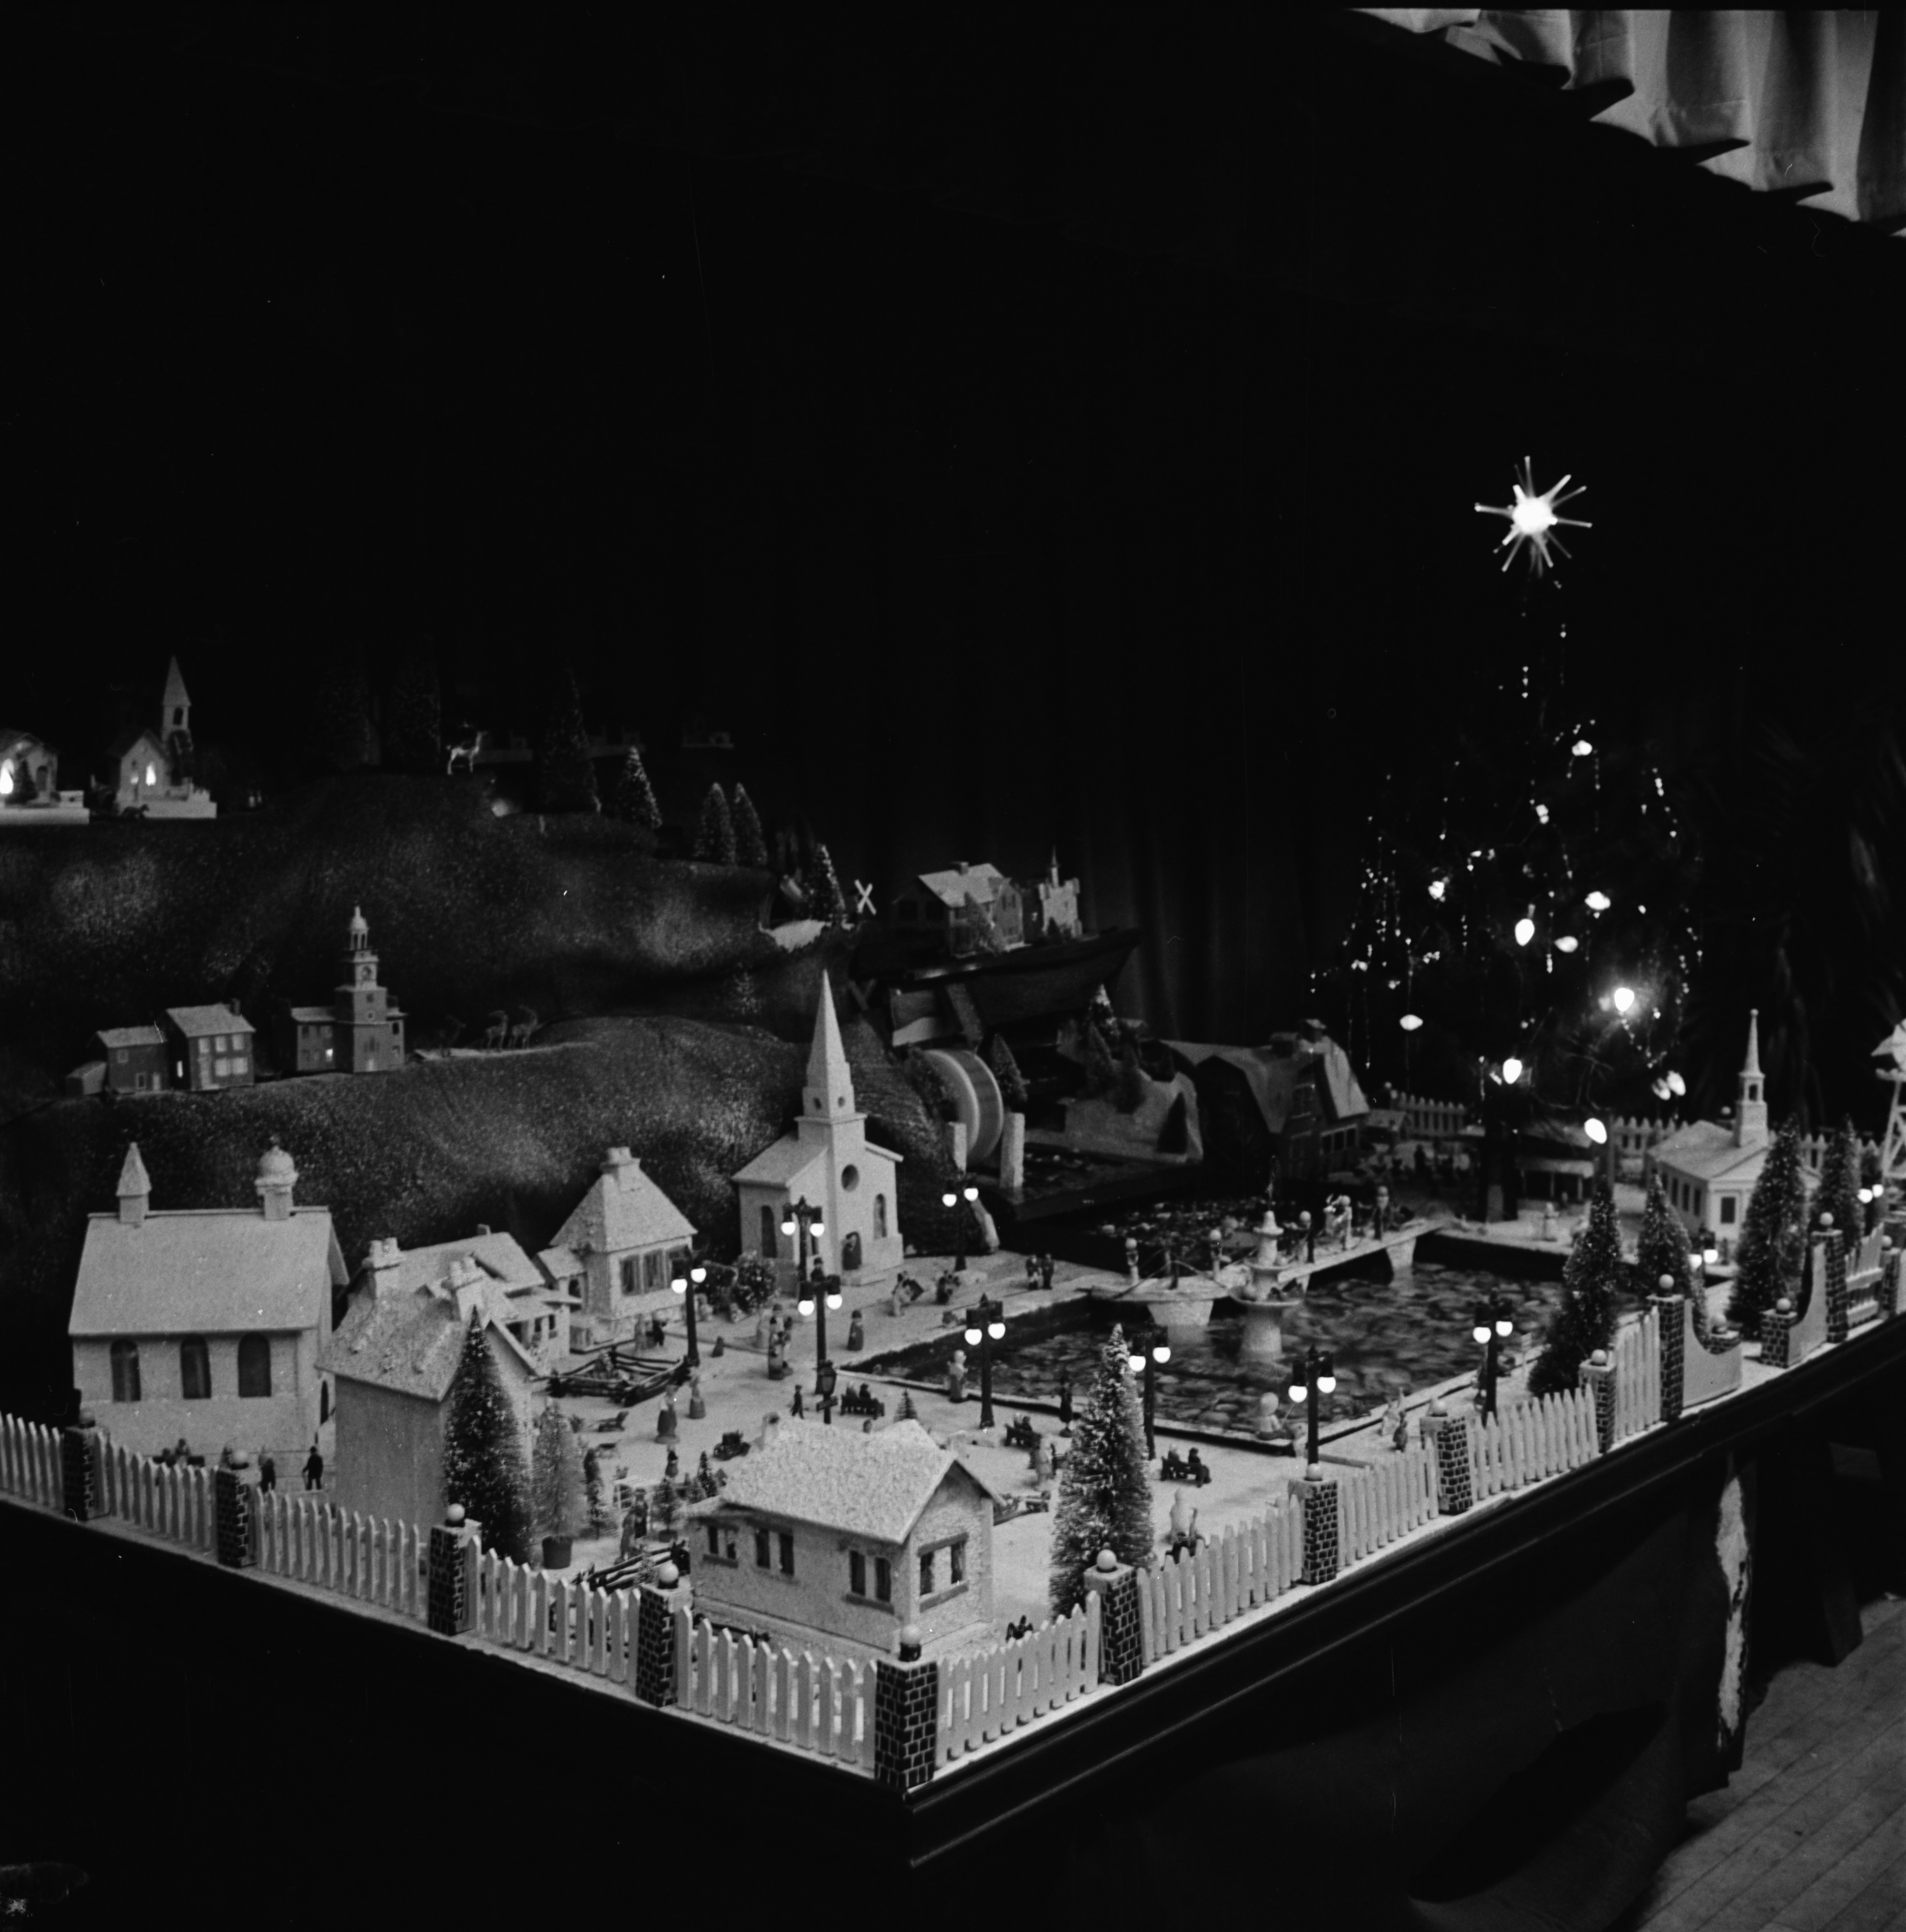 Christmas Village at First Methodist Church, December 1969 image